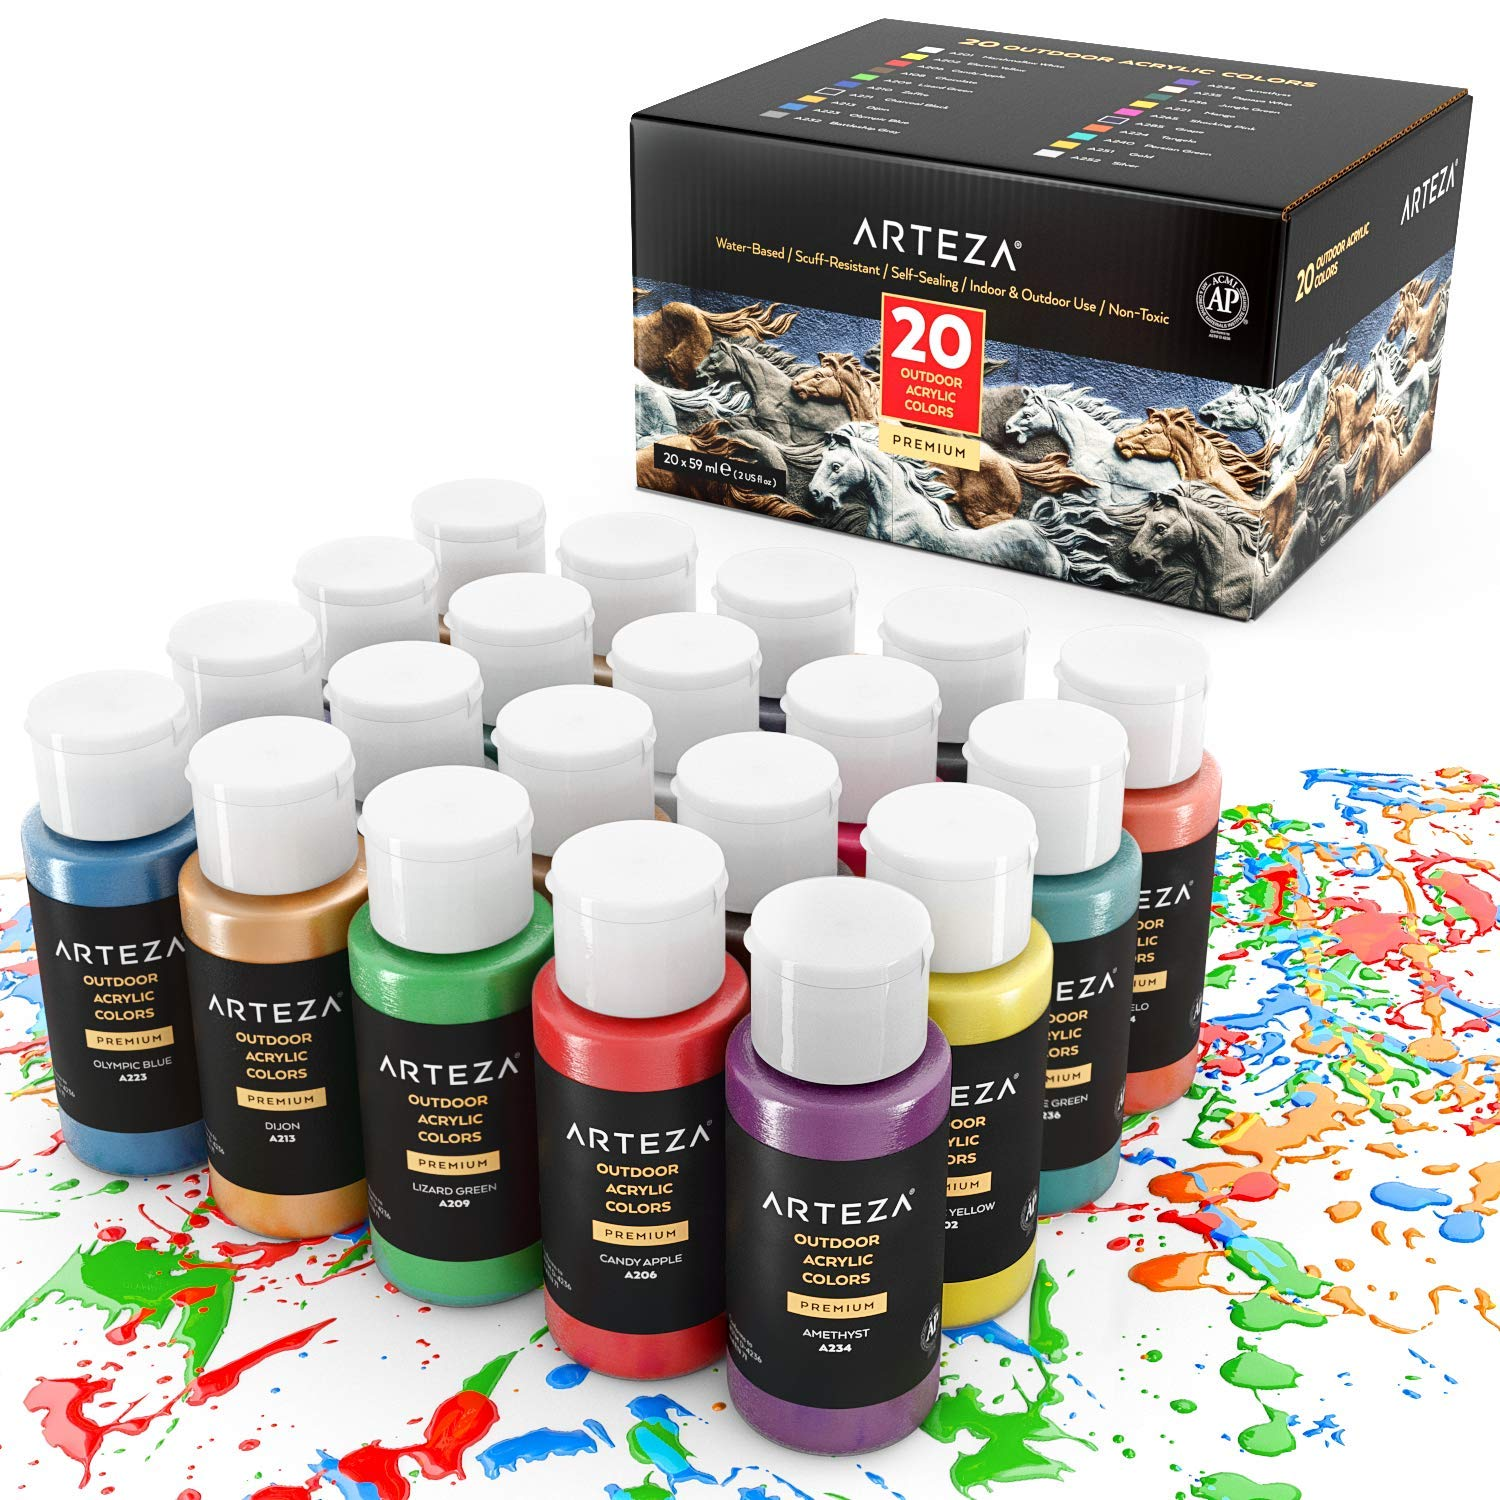 ARTEZA Outdoor Acrylic Paint, Set of 20 Colors/Tubes (59 ml, 2 oz.) with Storage Box, Rich Pigments, Multi-Surface Paints for Rock, Wood, Fabric, Leather, Paper, Crafts, Canvas and Wall Painting by ARTEZA